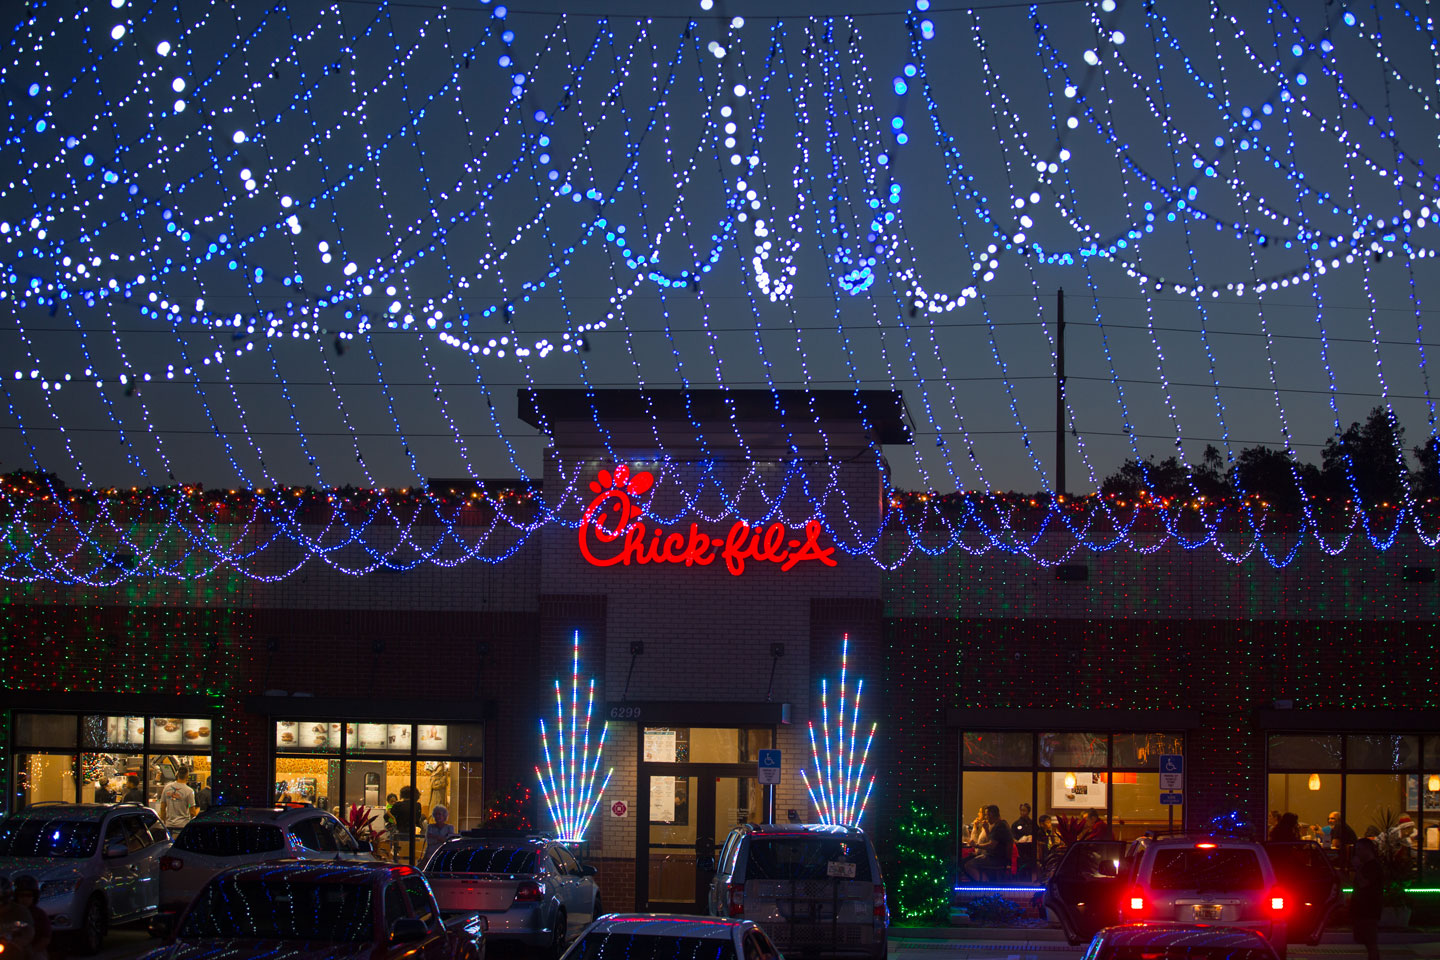 Deck the chick fil a with lights and nuggets chick fil a mozeypictures Gallery